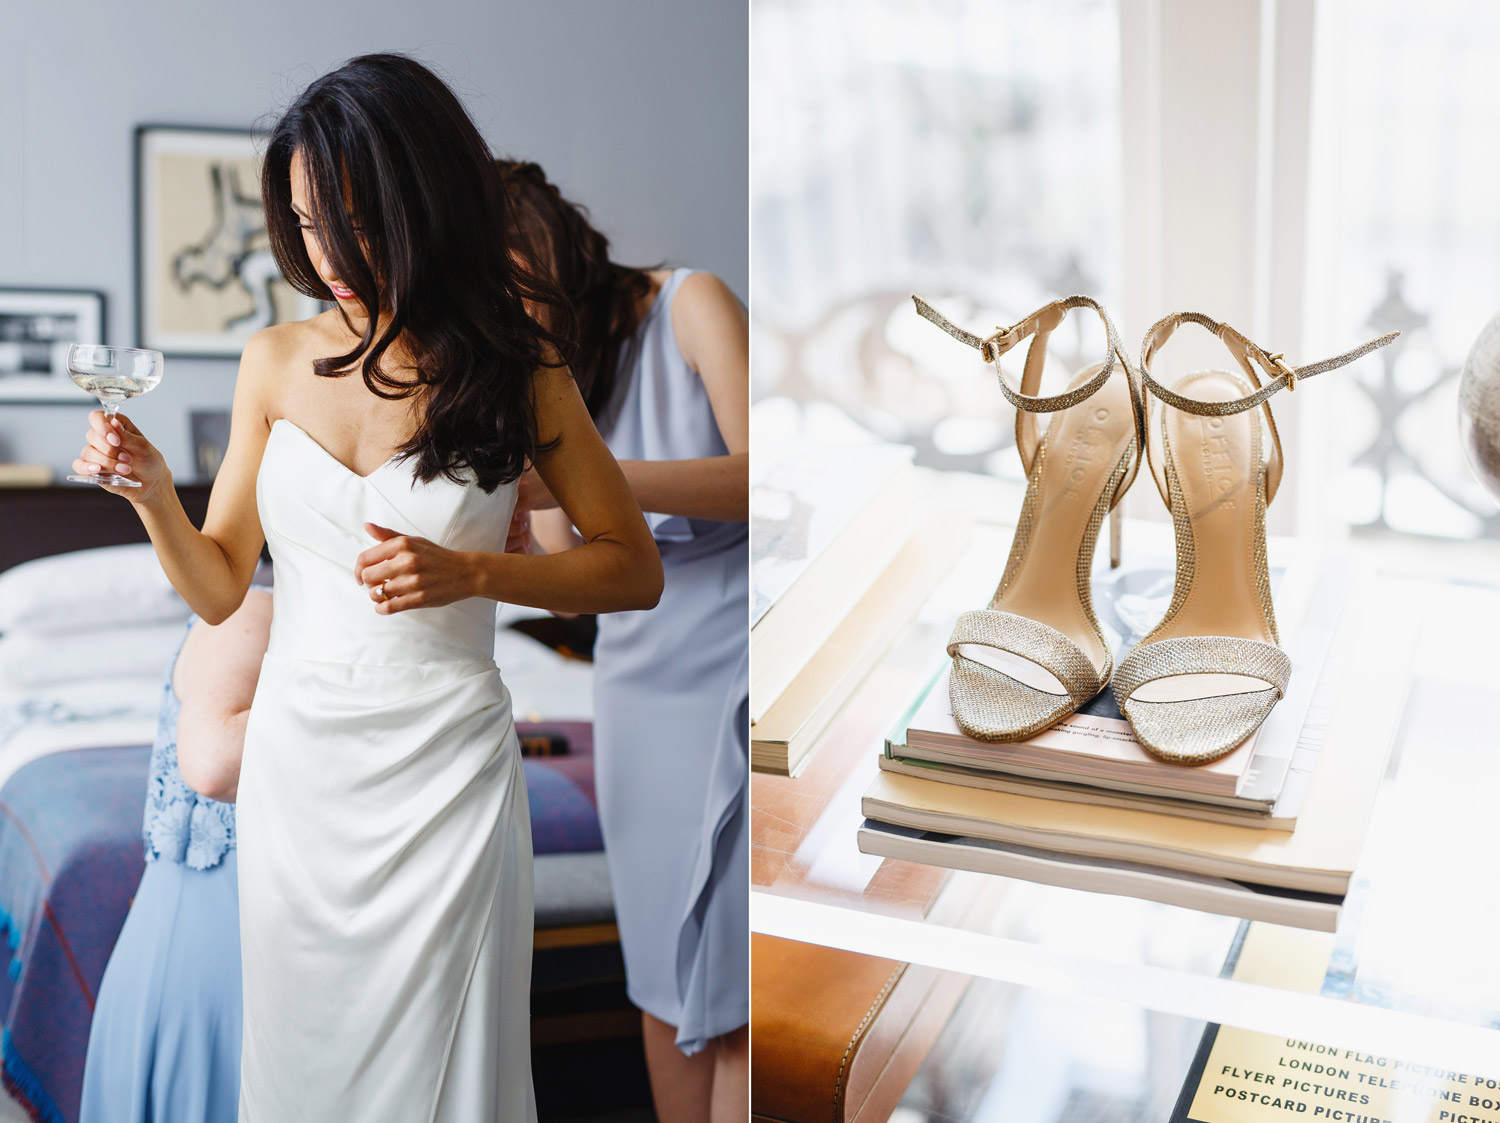 A bride puts on her wedding dress at The Laslett Hotel in London - wedding photographer